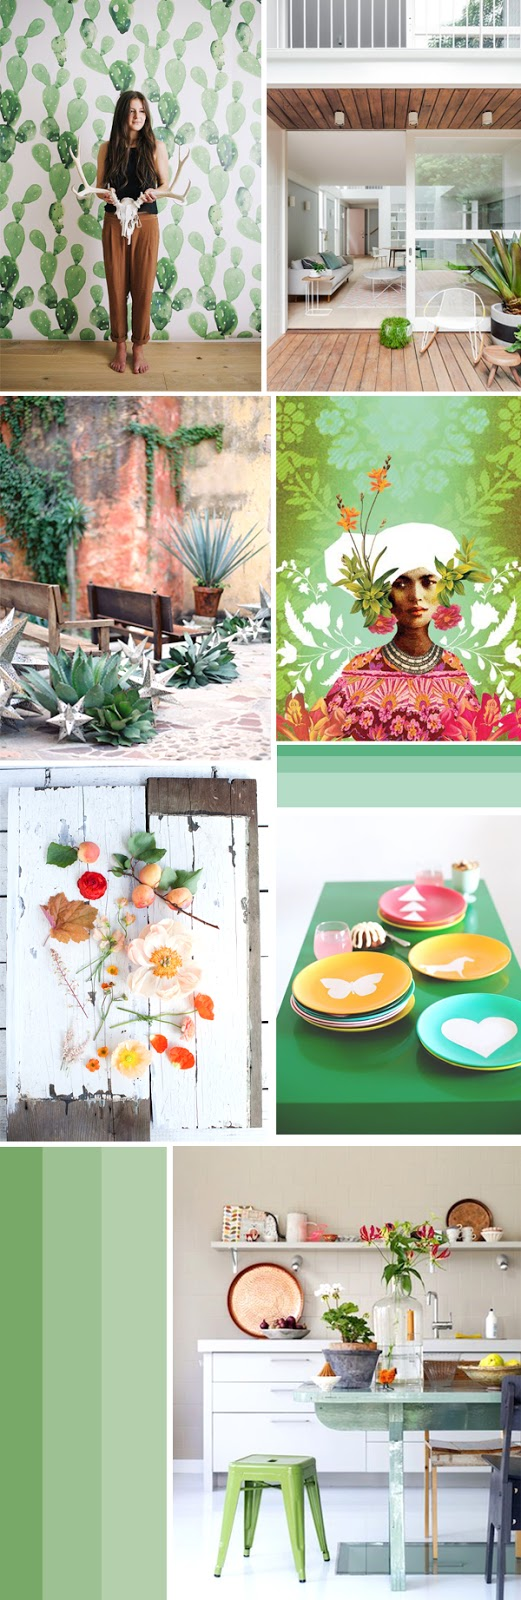 Moodboard for a Green!